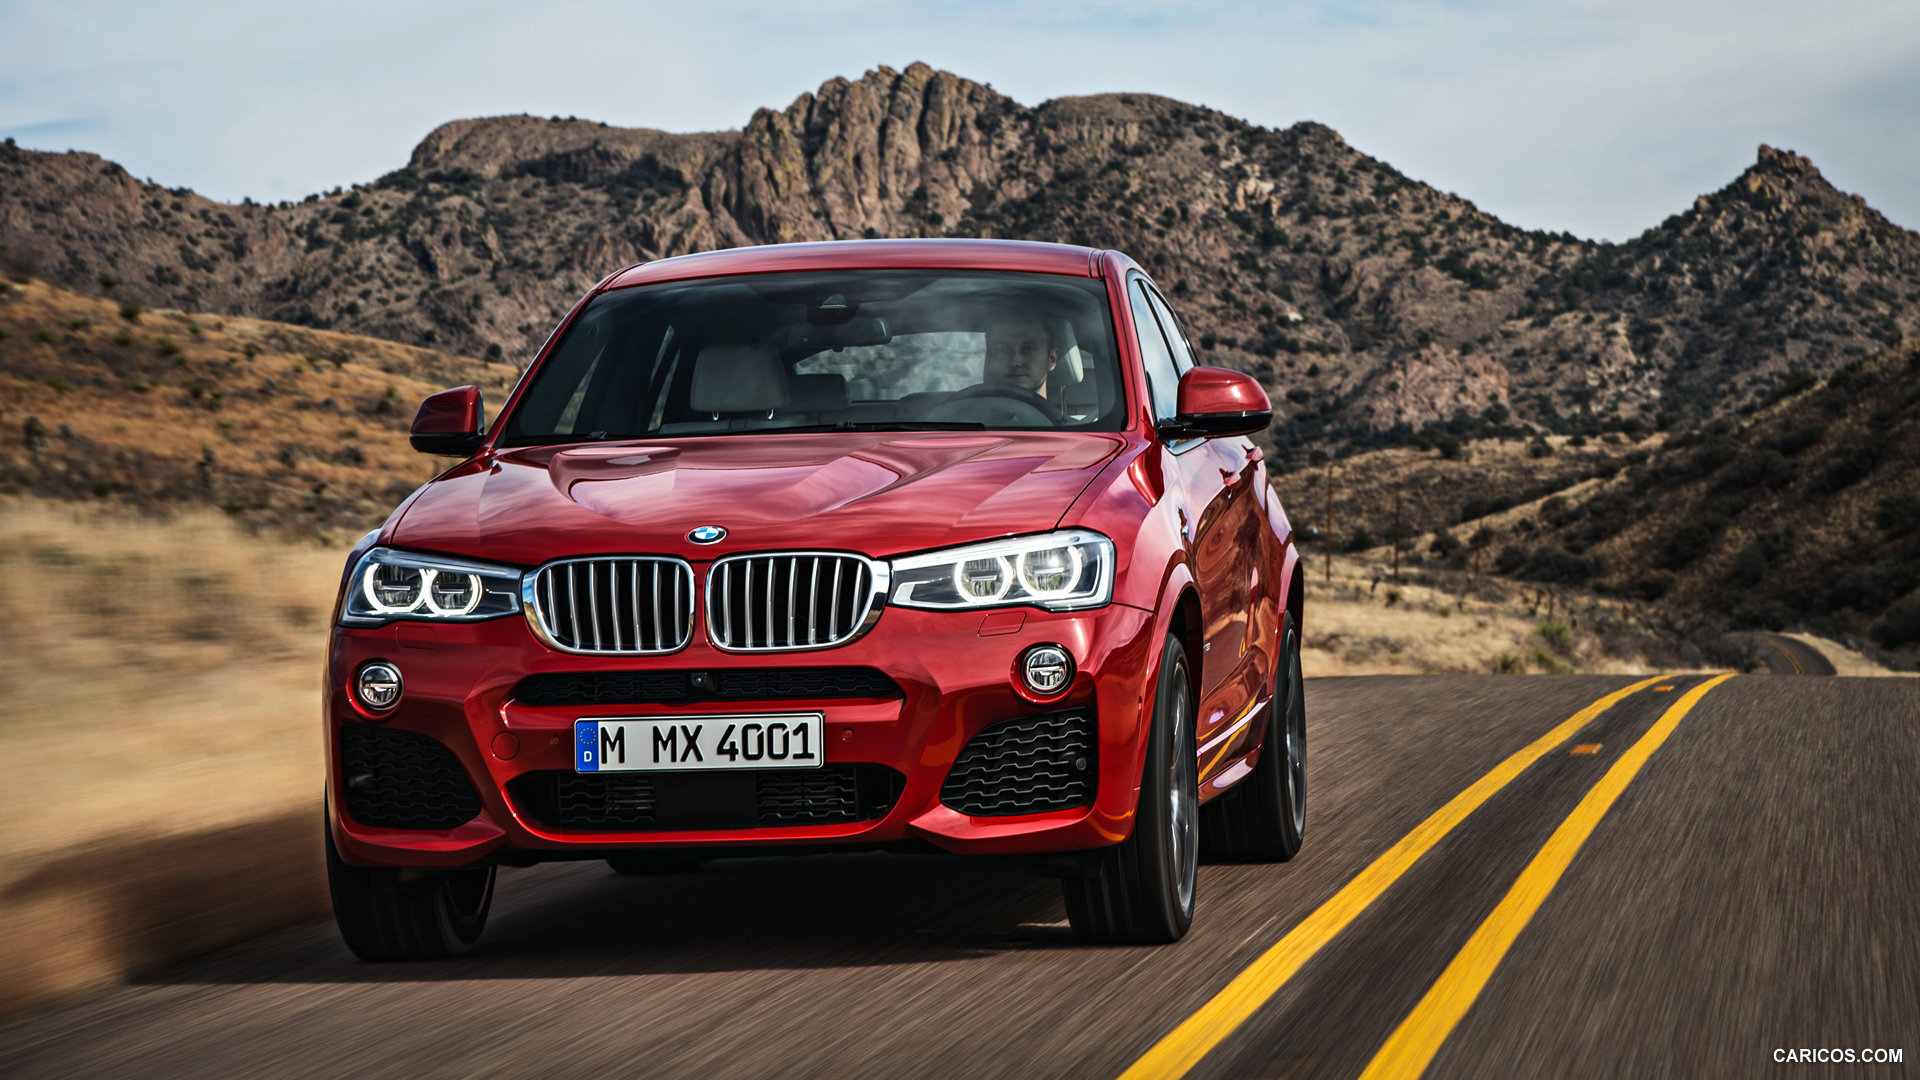 BMW X4 HD Backgrounds For 1920x1080 Full 1080p Desktop